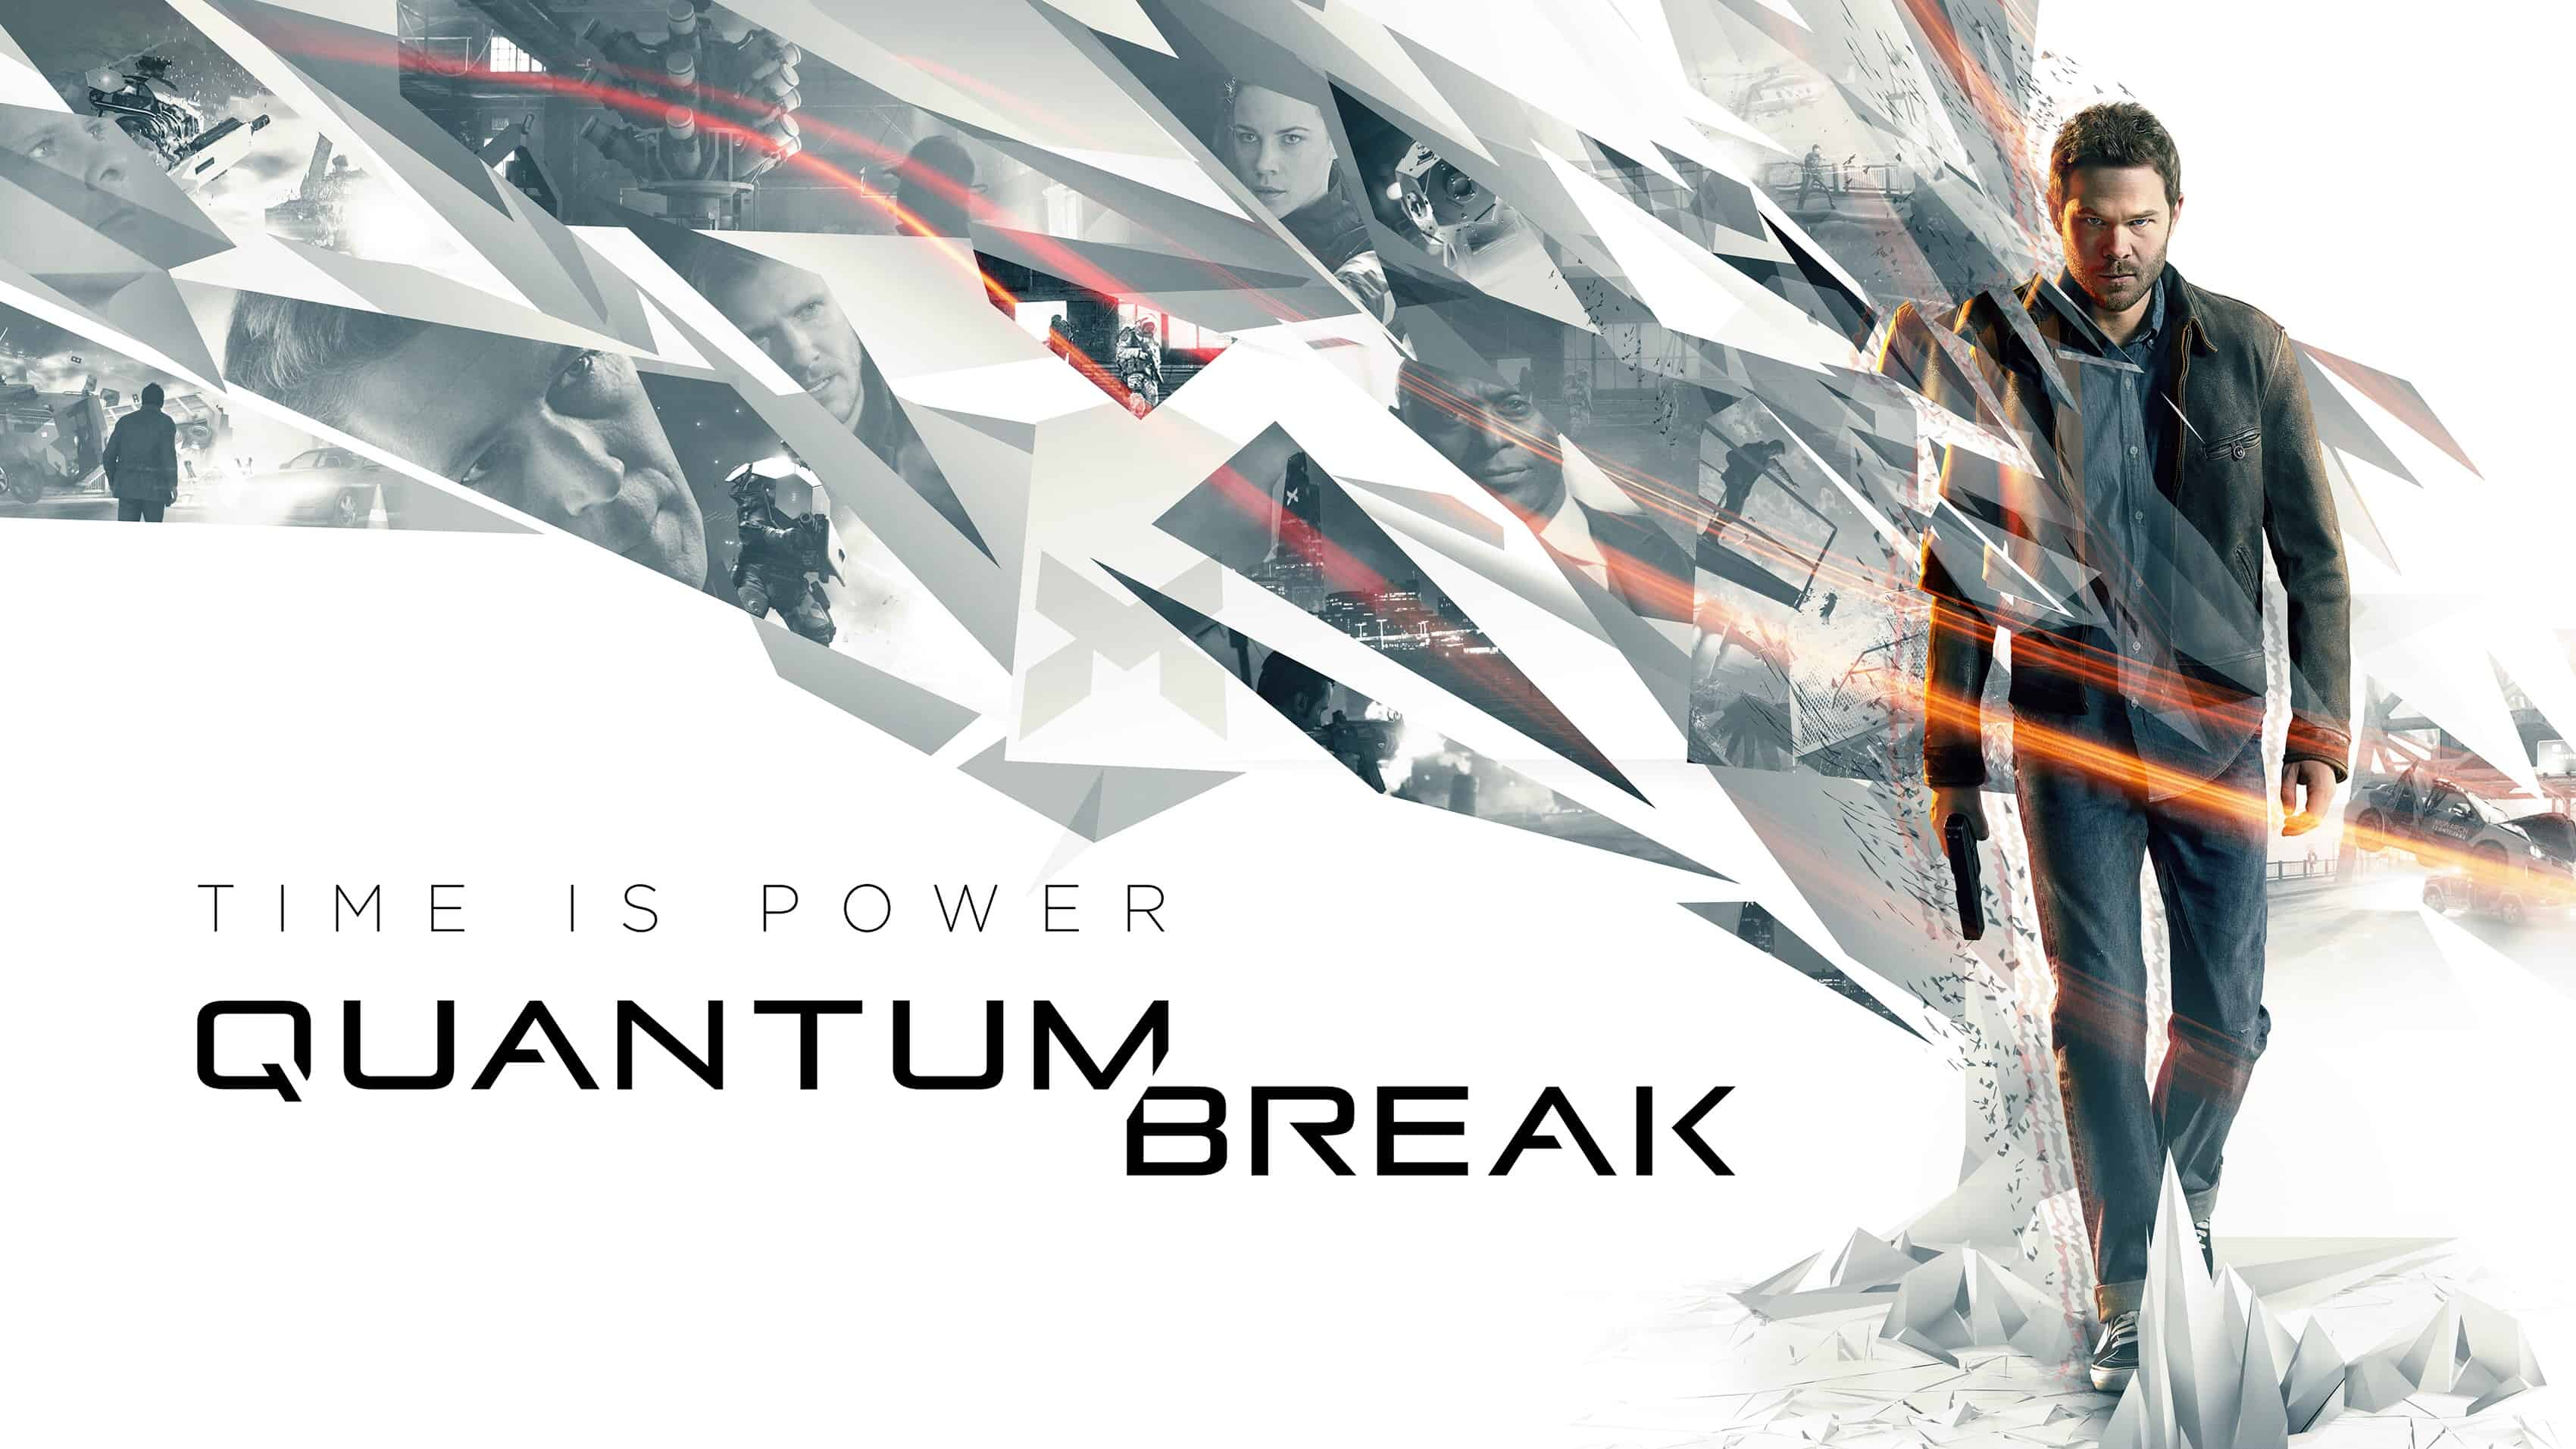 'Quantum Break' spends time wisely